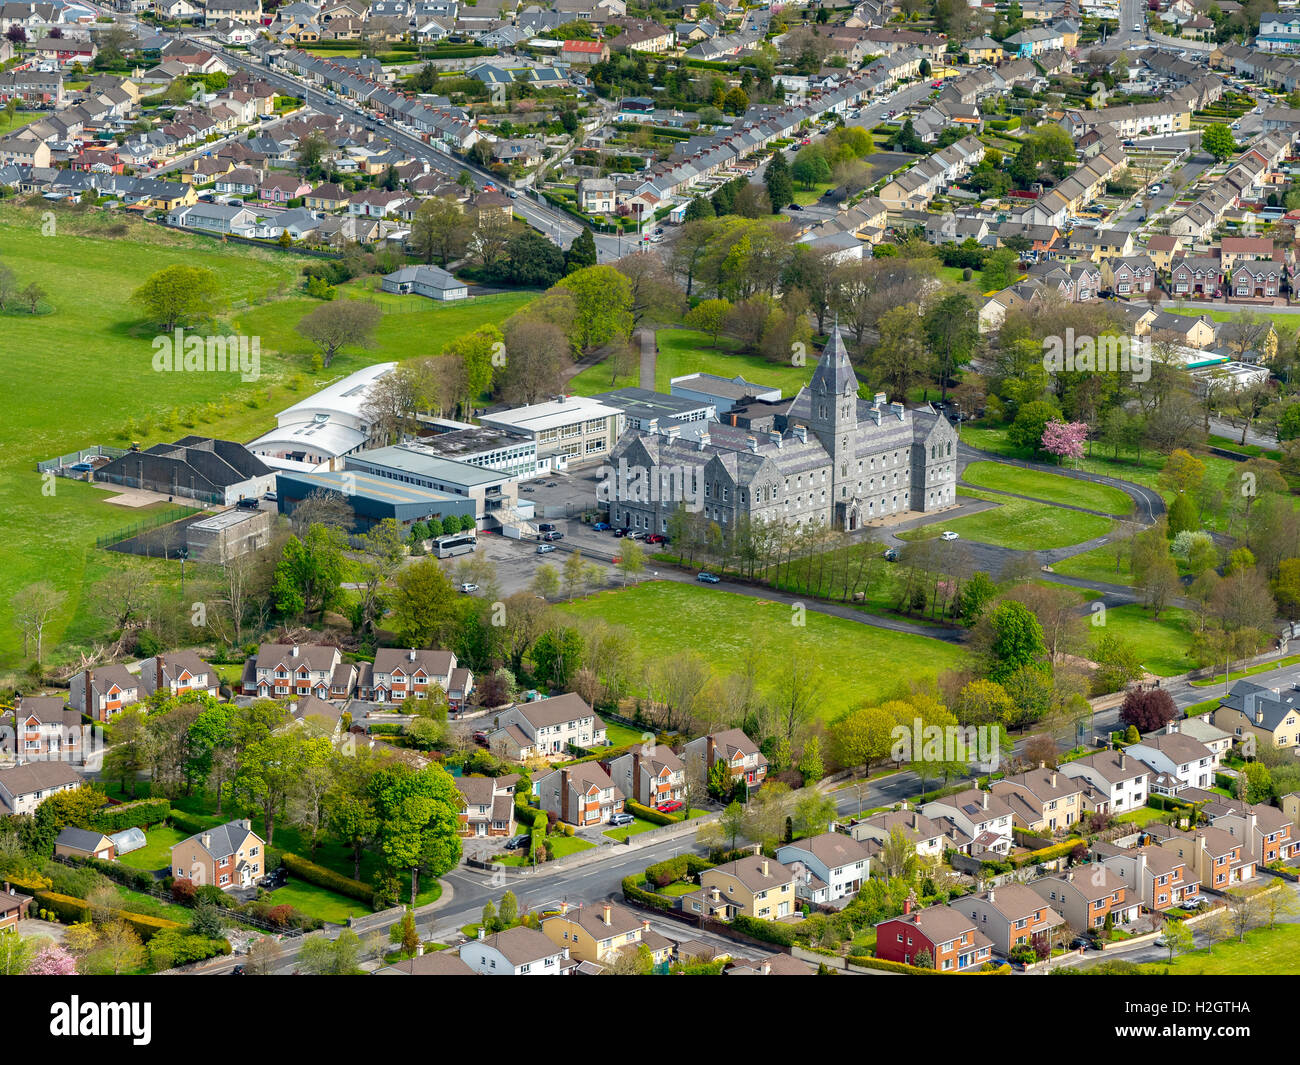 St. Flannan's College, secondary school, Ennis, County Clare, Ireland - Stock Image